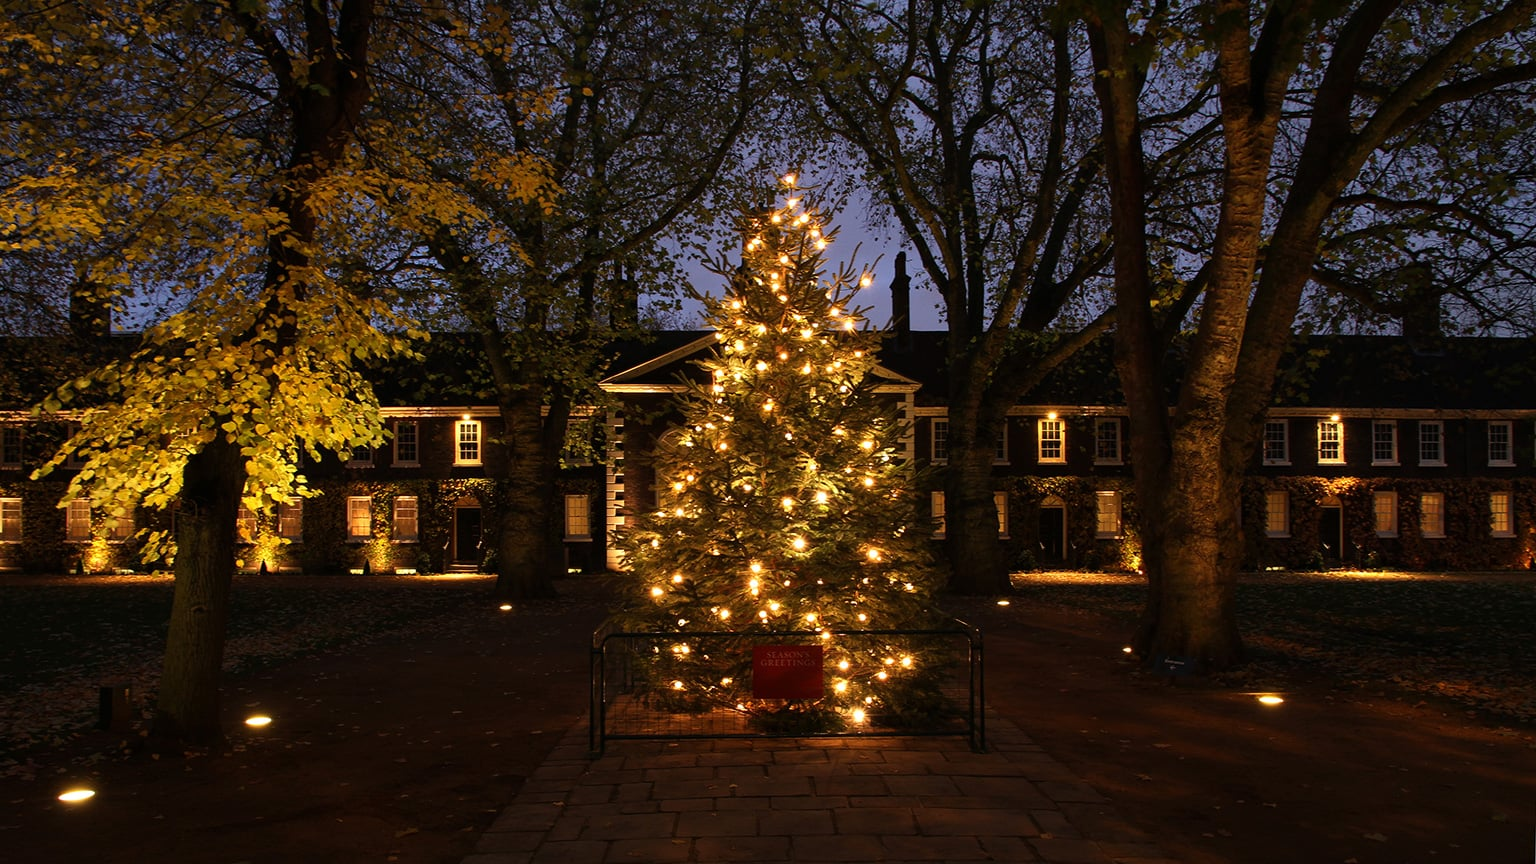 Exterior of the Geffrye during Christmas Past - Credit: Geffrye Museum of the Home/Mandy Williams